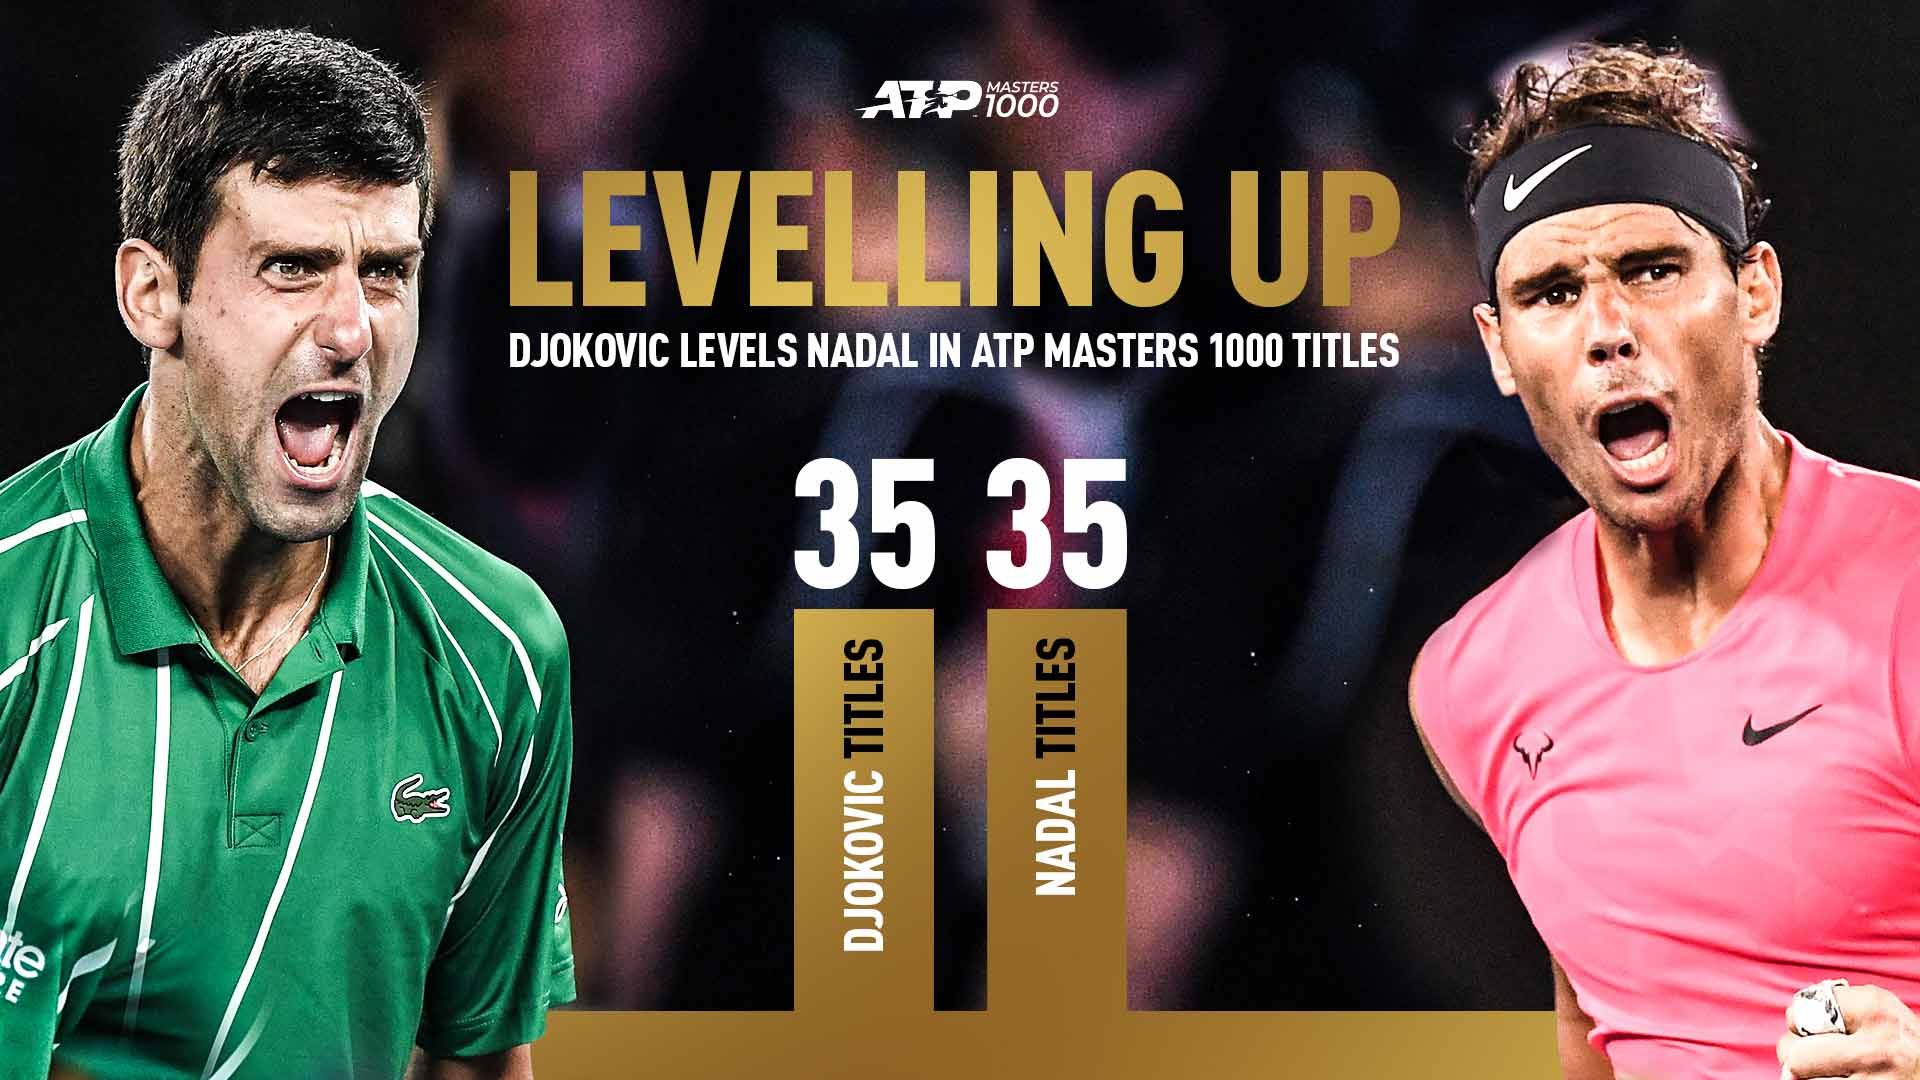 Atp News Djokovic Extends Big Titles Lead With Second Career Golden Masters Theunionjournal The Union Journal